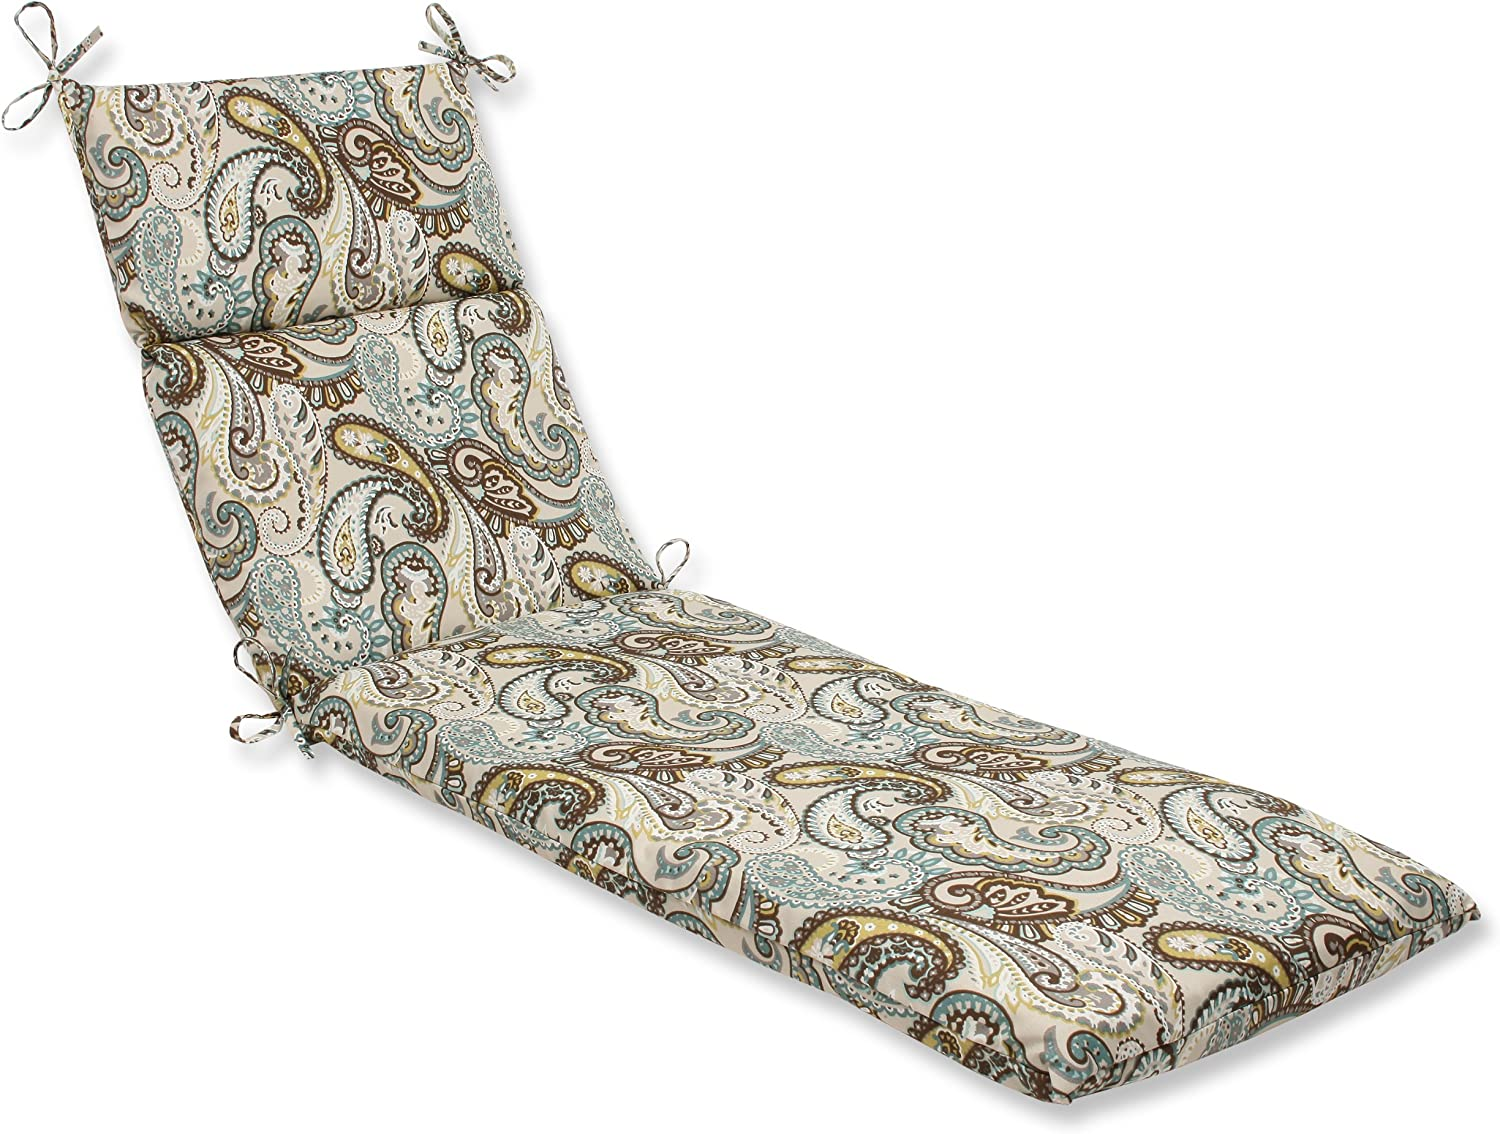 Pillow Perfect Outdoor Tamara Paisley Quartz Chaise Lounge Cushion